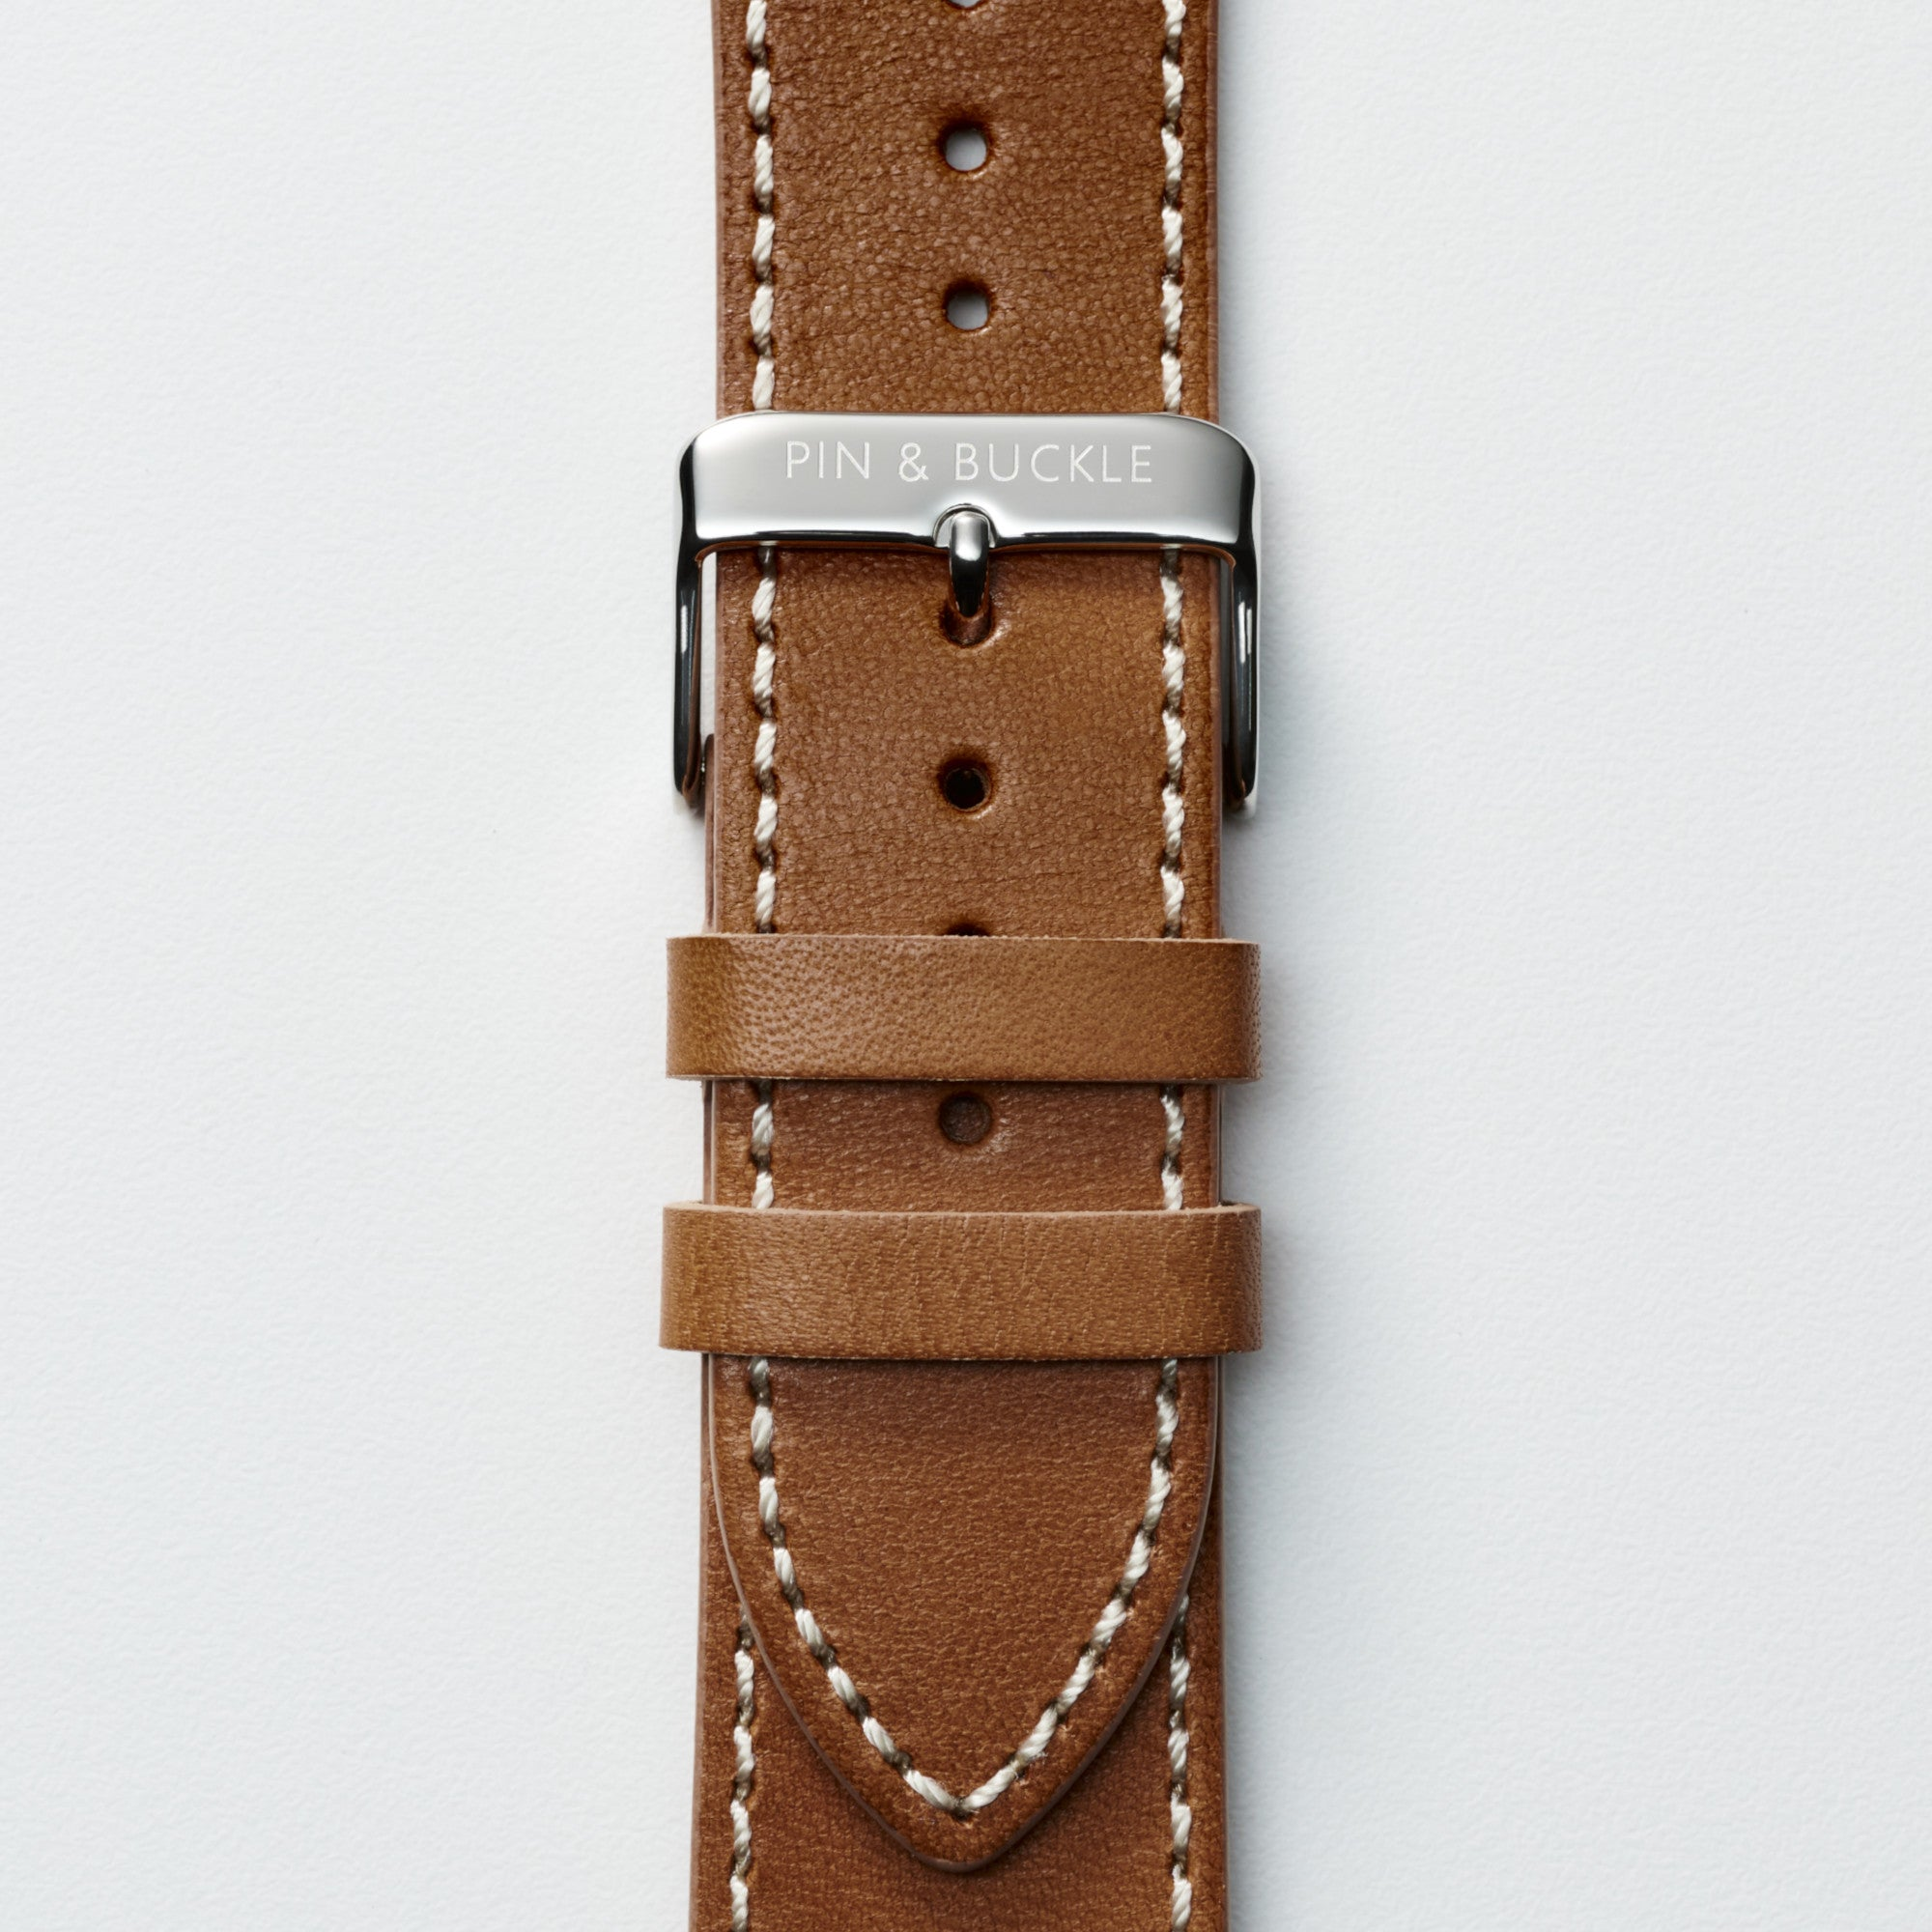 Vachetta Leather Apple Watch Band by Pin & Buckle - Patina Day 90